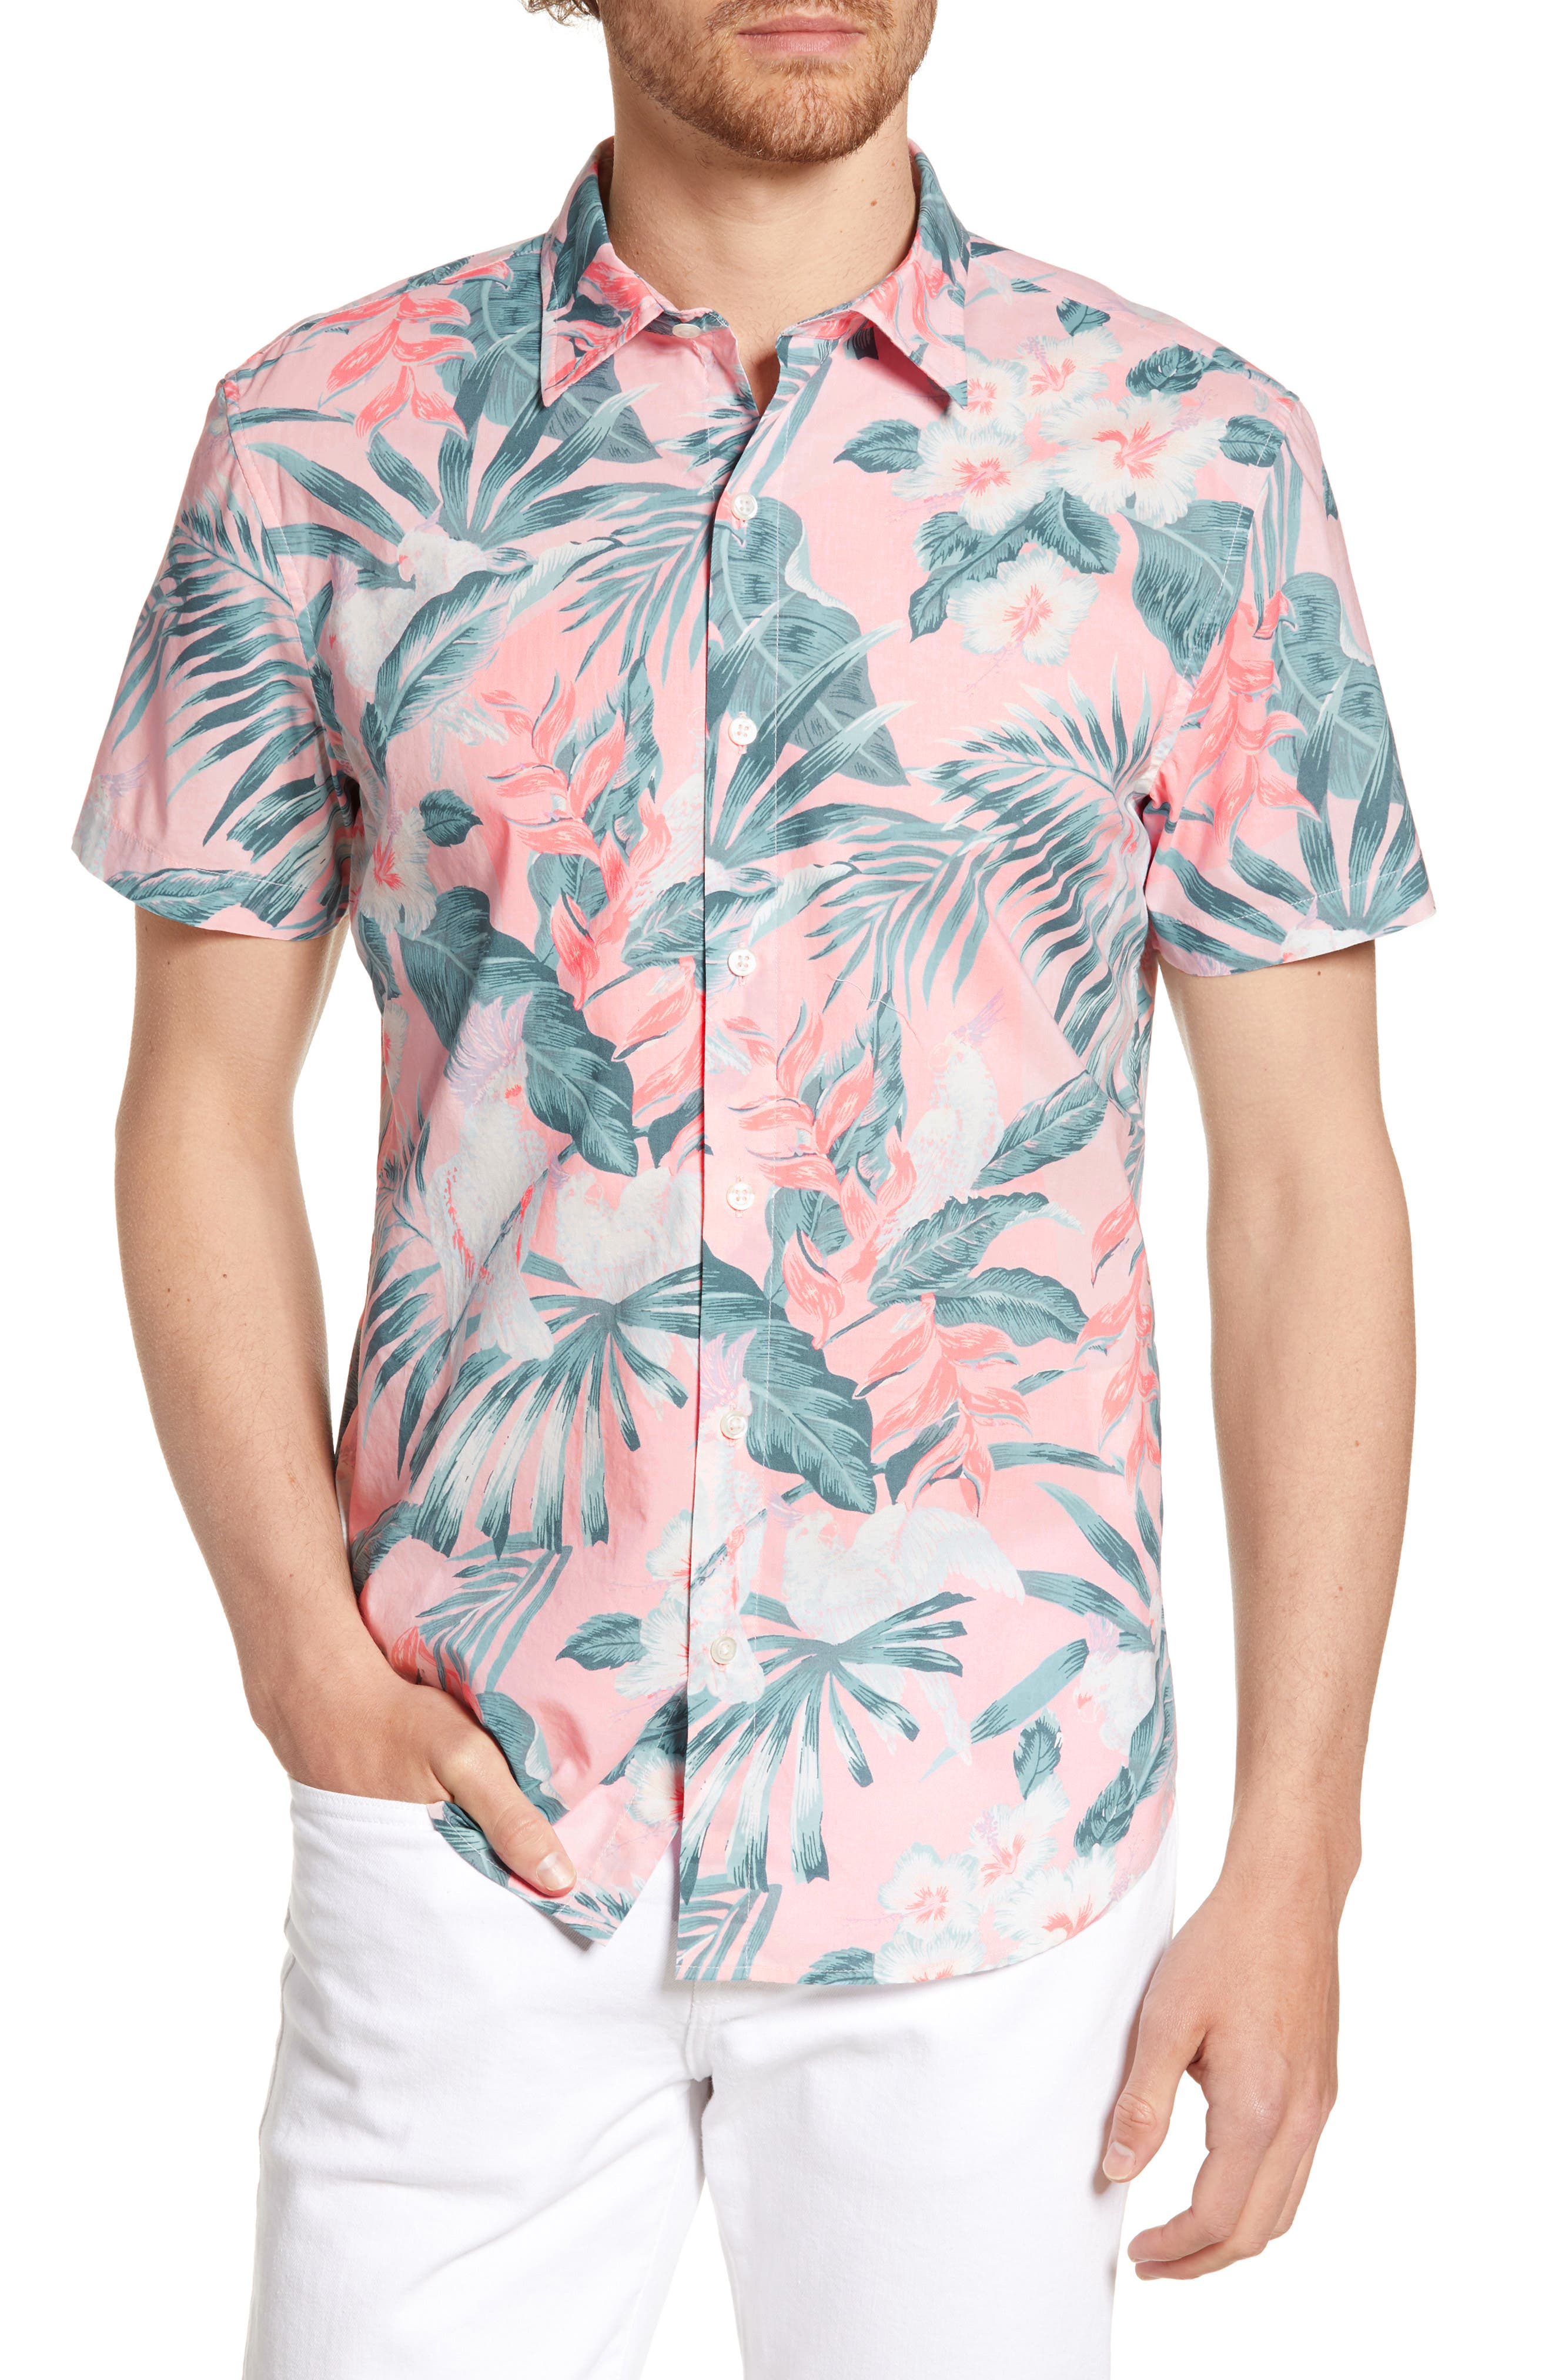 Tropical foliage adds an easy island vibe to a crisp cotton sport shirt cut for a dapper slim fit. Style Name: Bonobos Riviera Slim Fit Tropical Print Shirt. Style Number: 5833467. Available in stores.